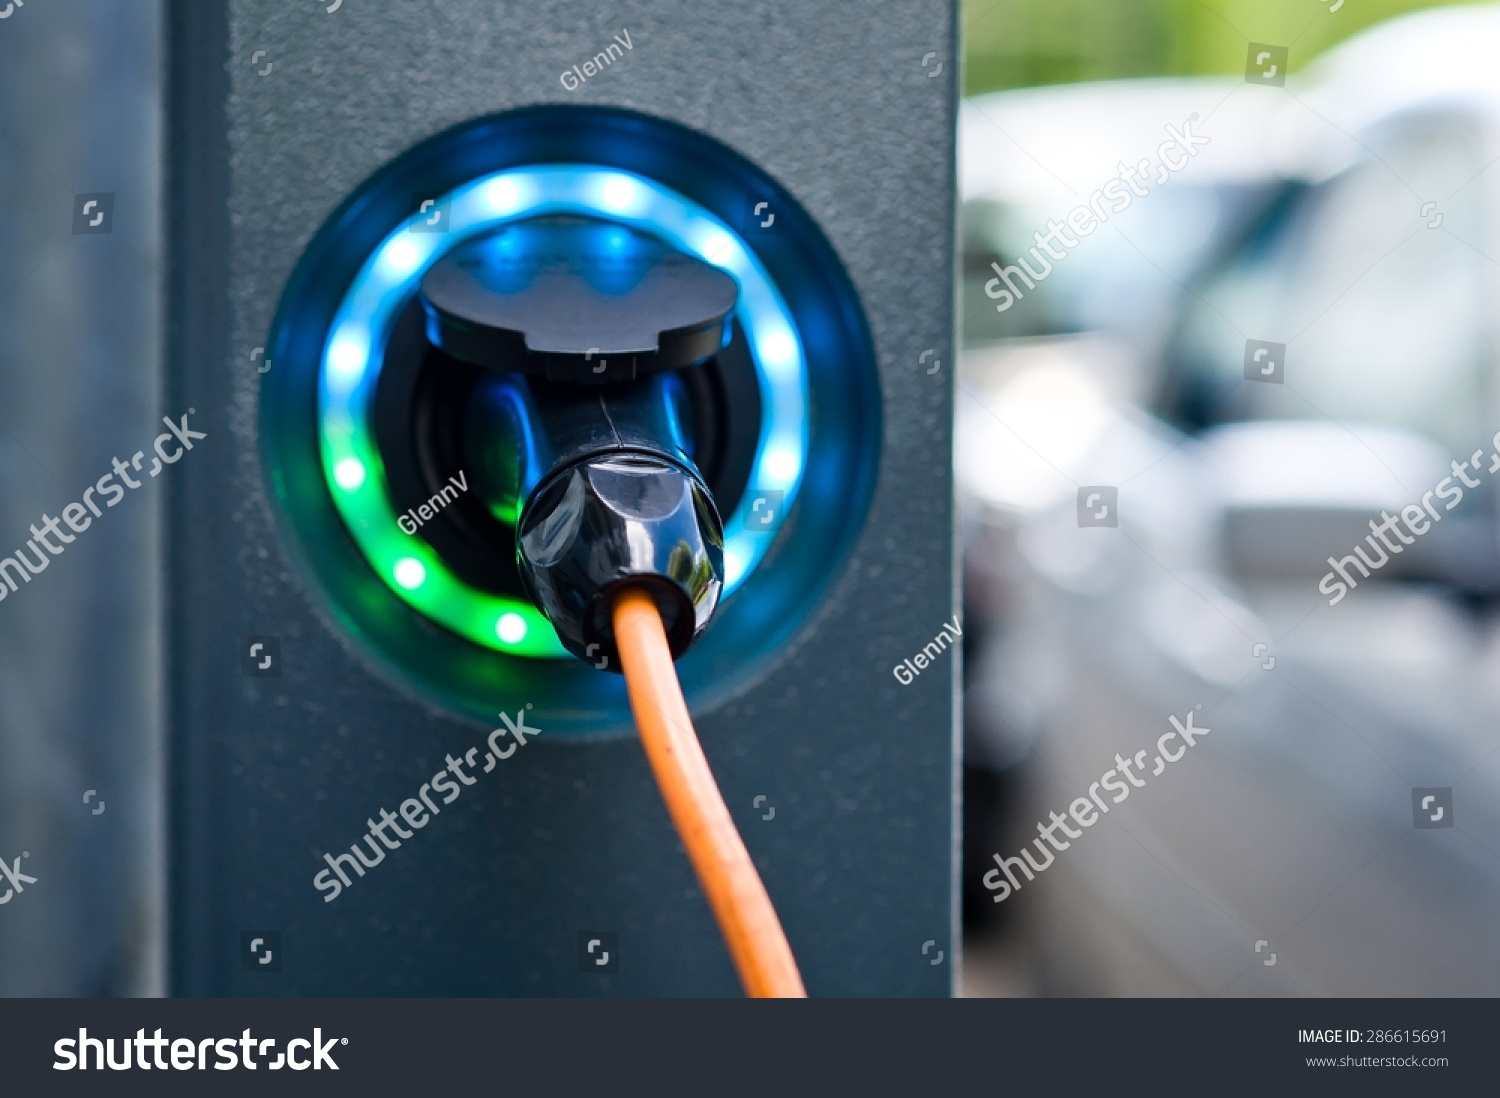 Socket For Electrical Car Battery Charger With Load Indicator Lights Selective Focus